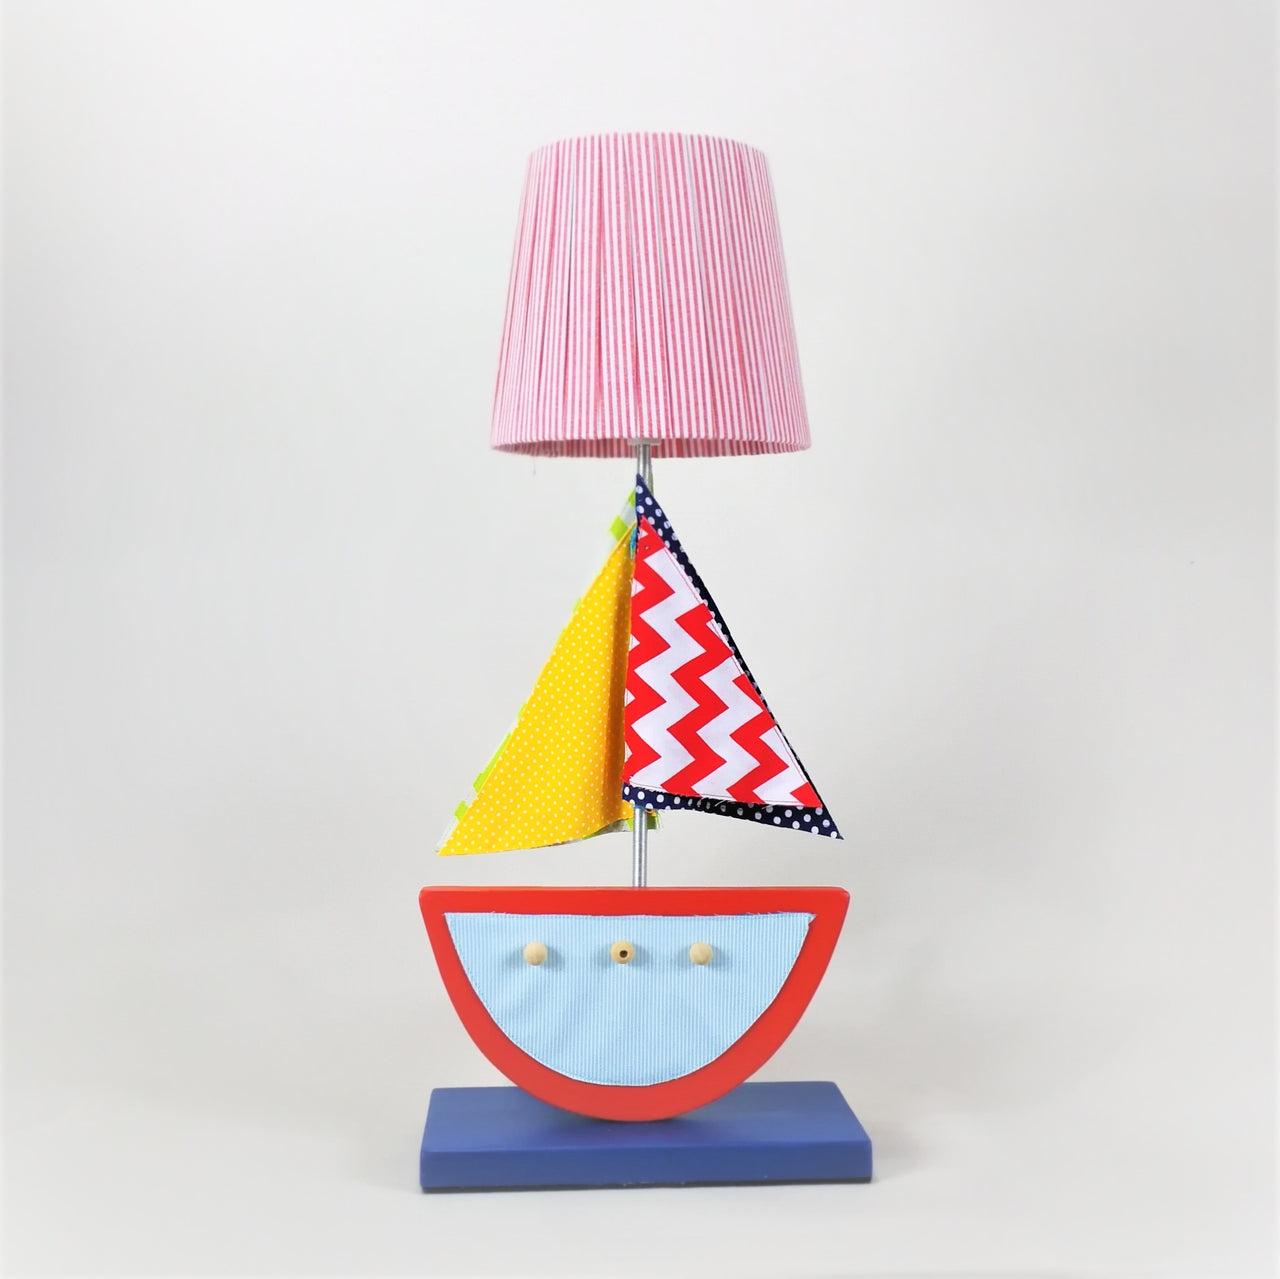 Sea Boat Side Lamp with Wooden Base